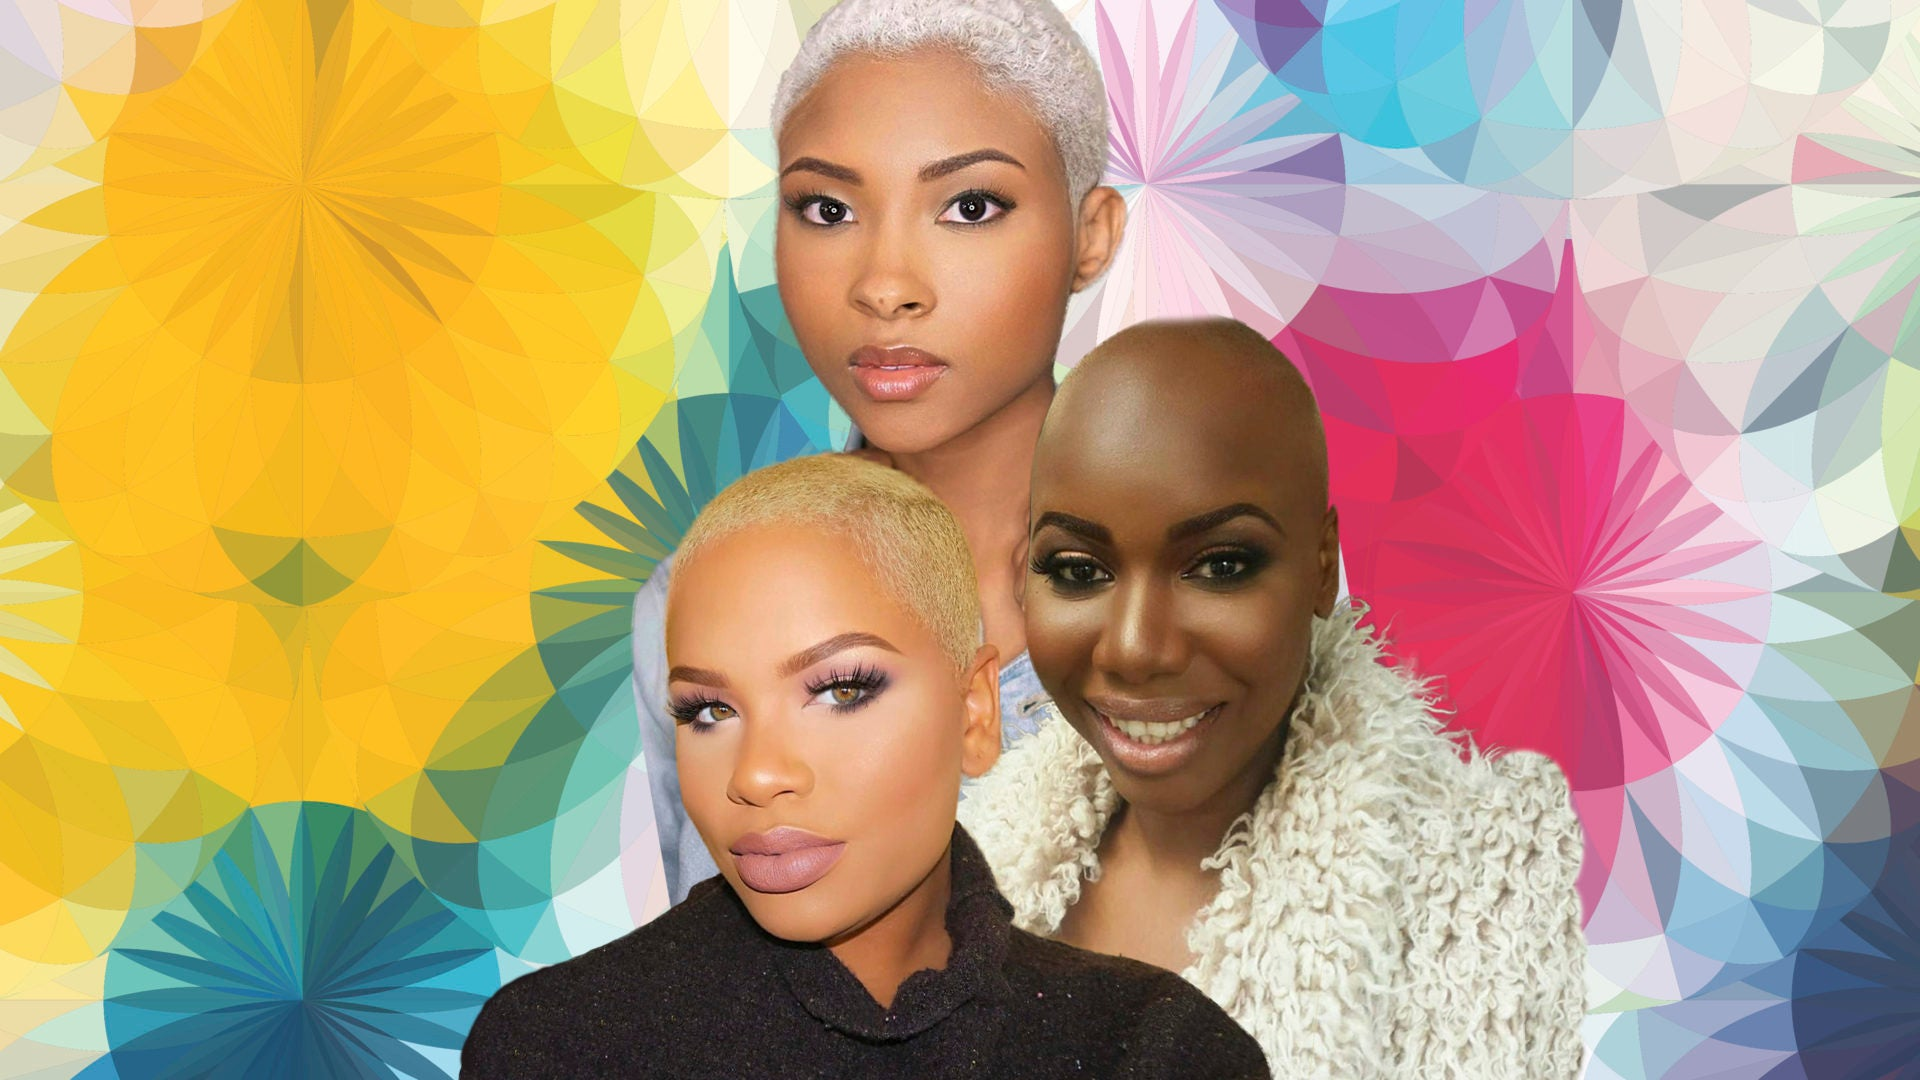 Shaved Hairstyles For Black Women